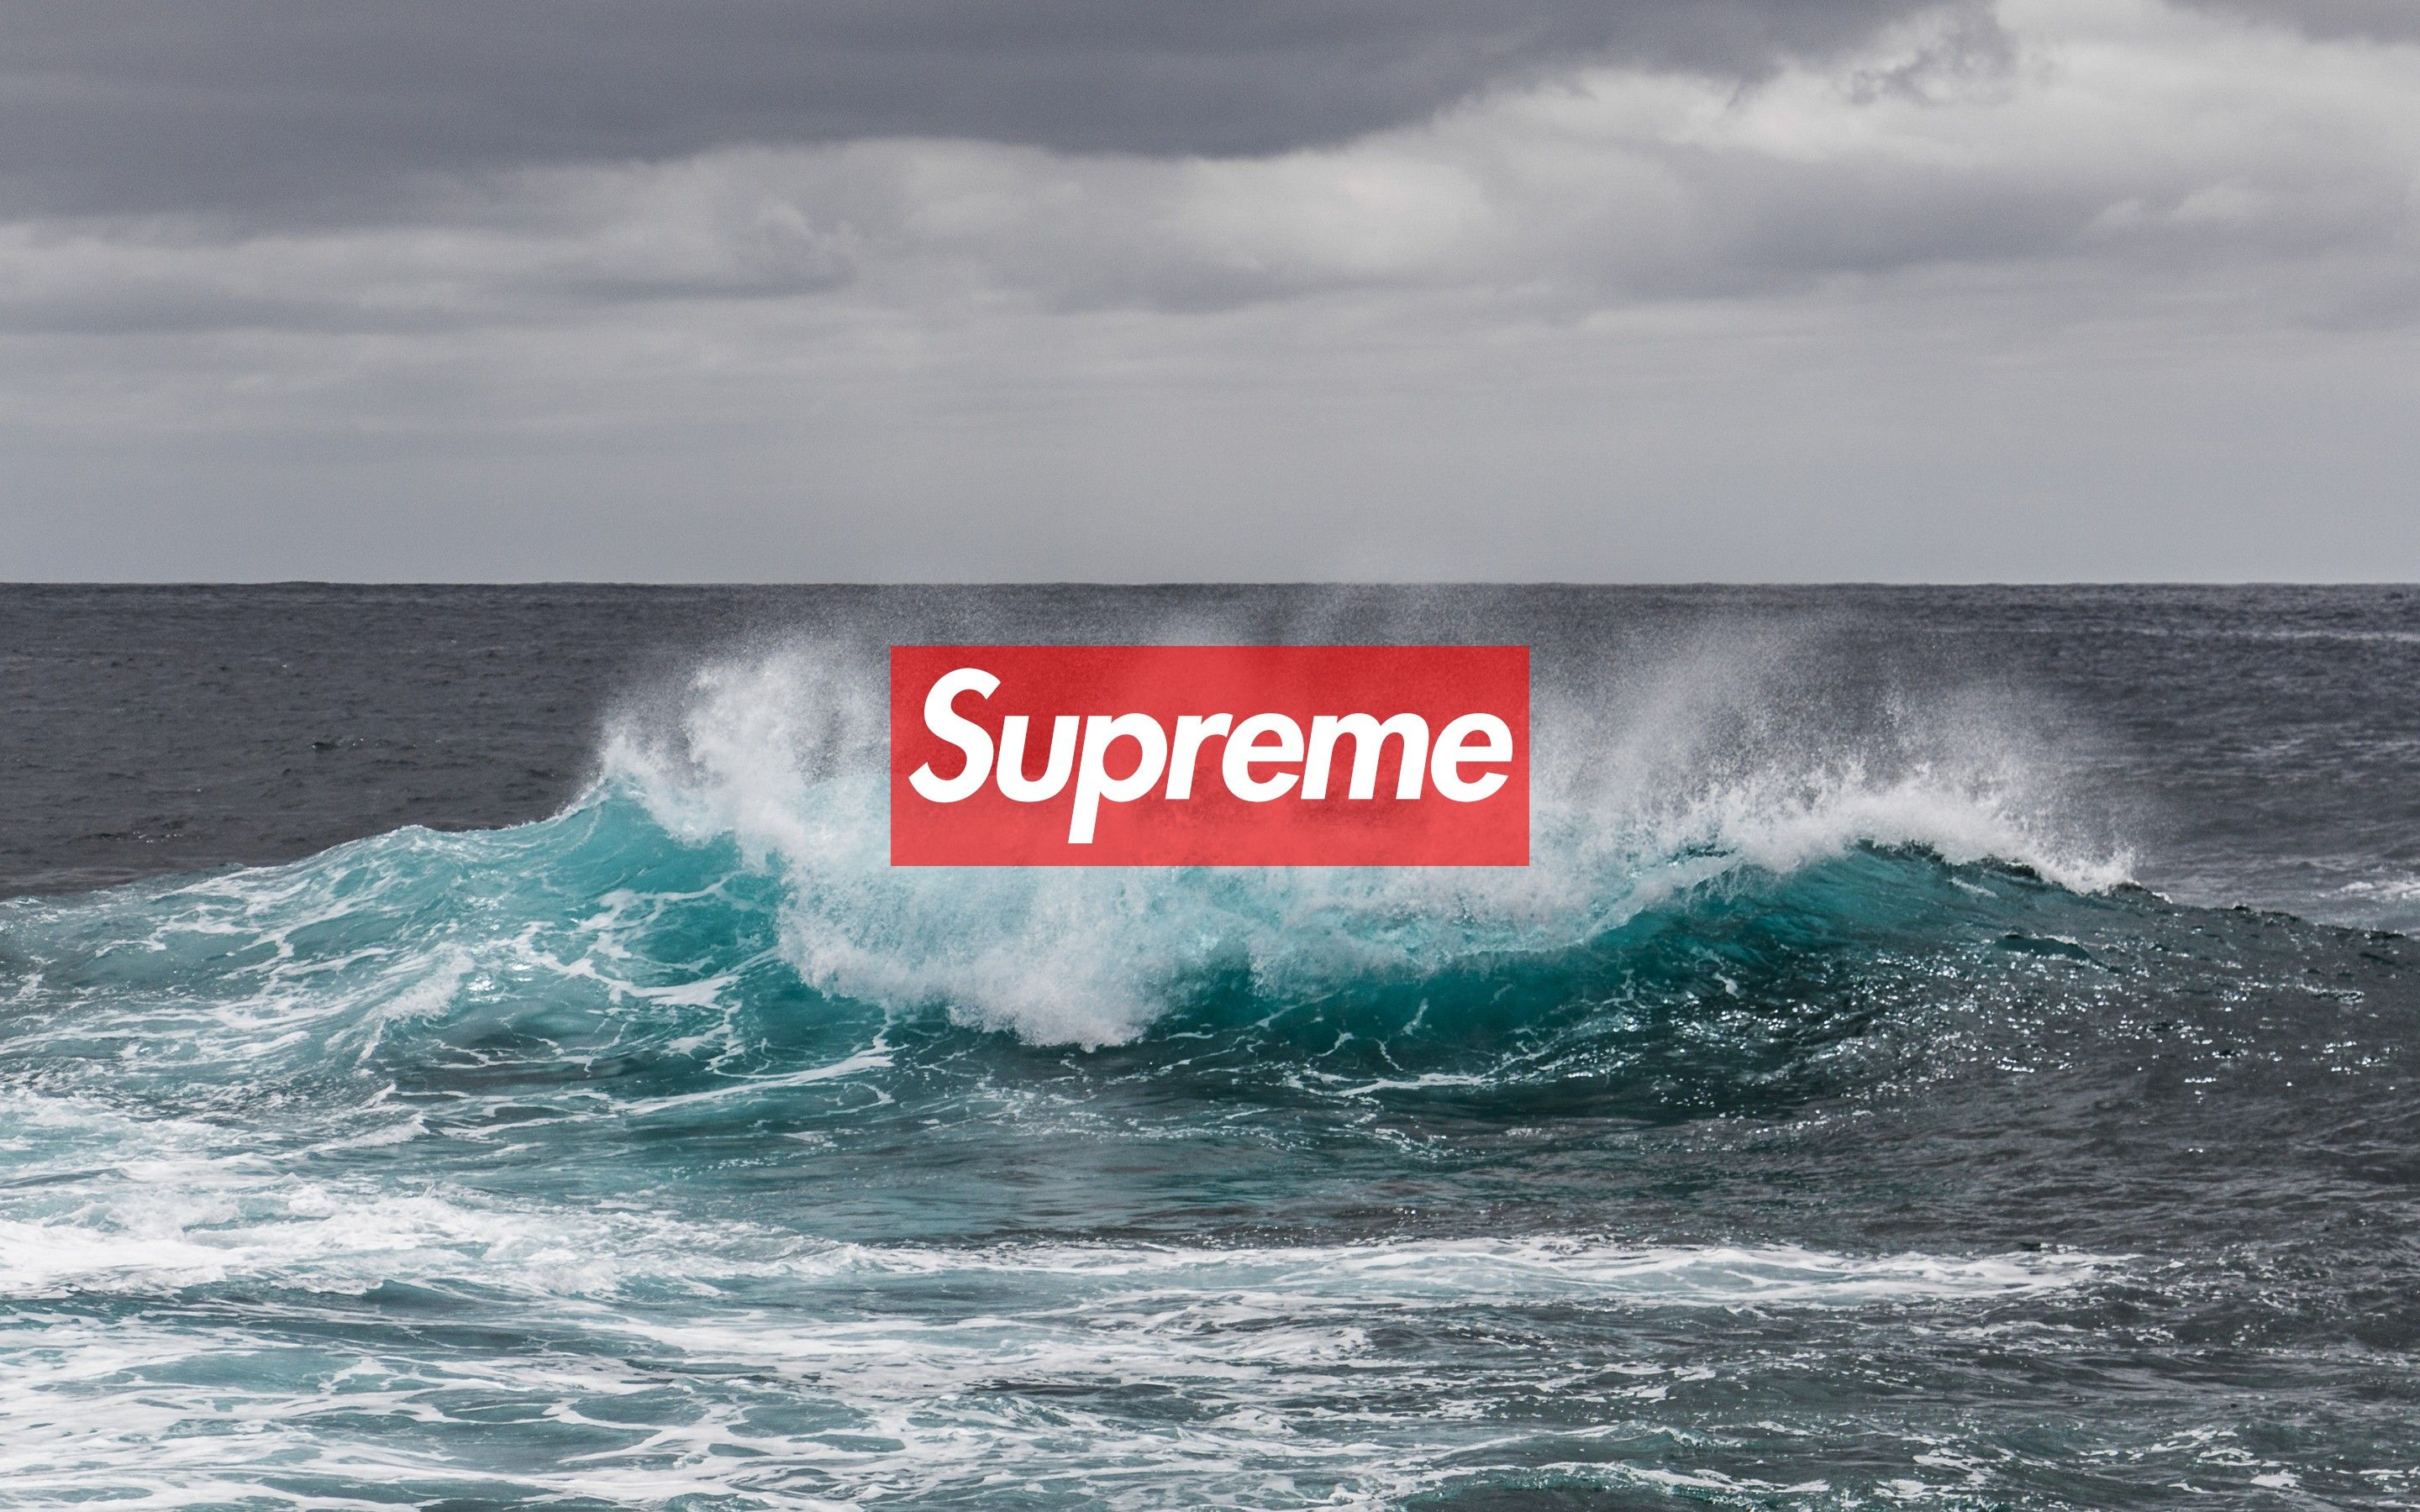 Full Size Supreme Wallpaper 2880x1800 Supreme Wallpaper Supreme Iphone Wallpaper 2880x1800 Wallpaper